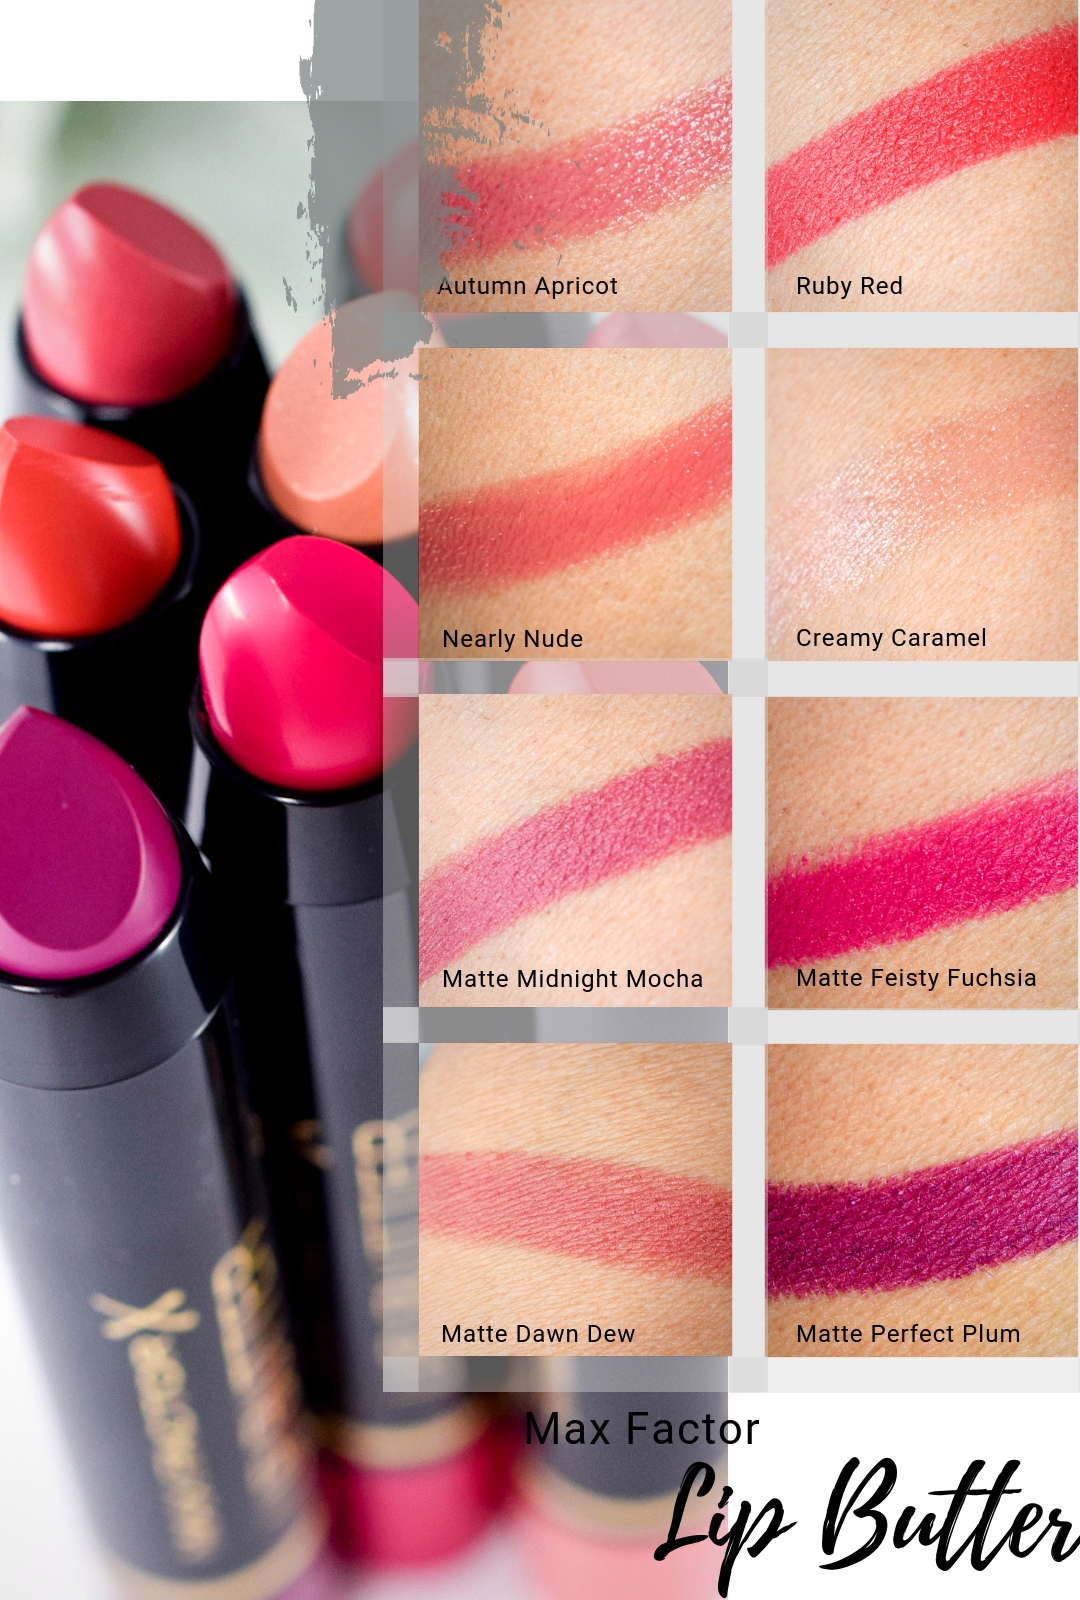 Die Farben der Max Factor Colour Elixir Lip Butters